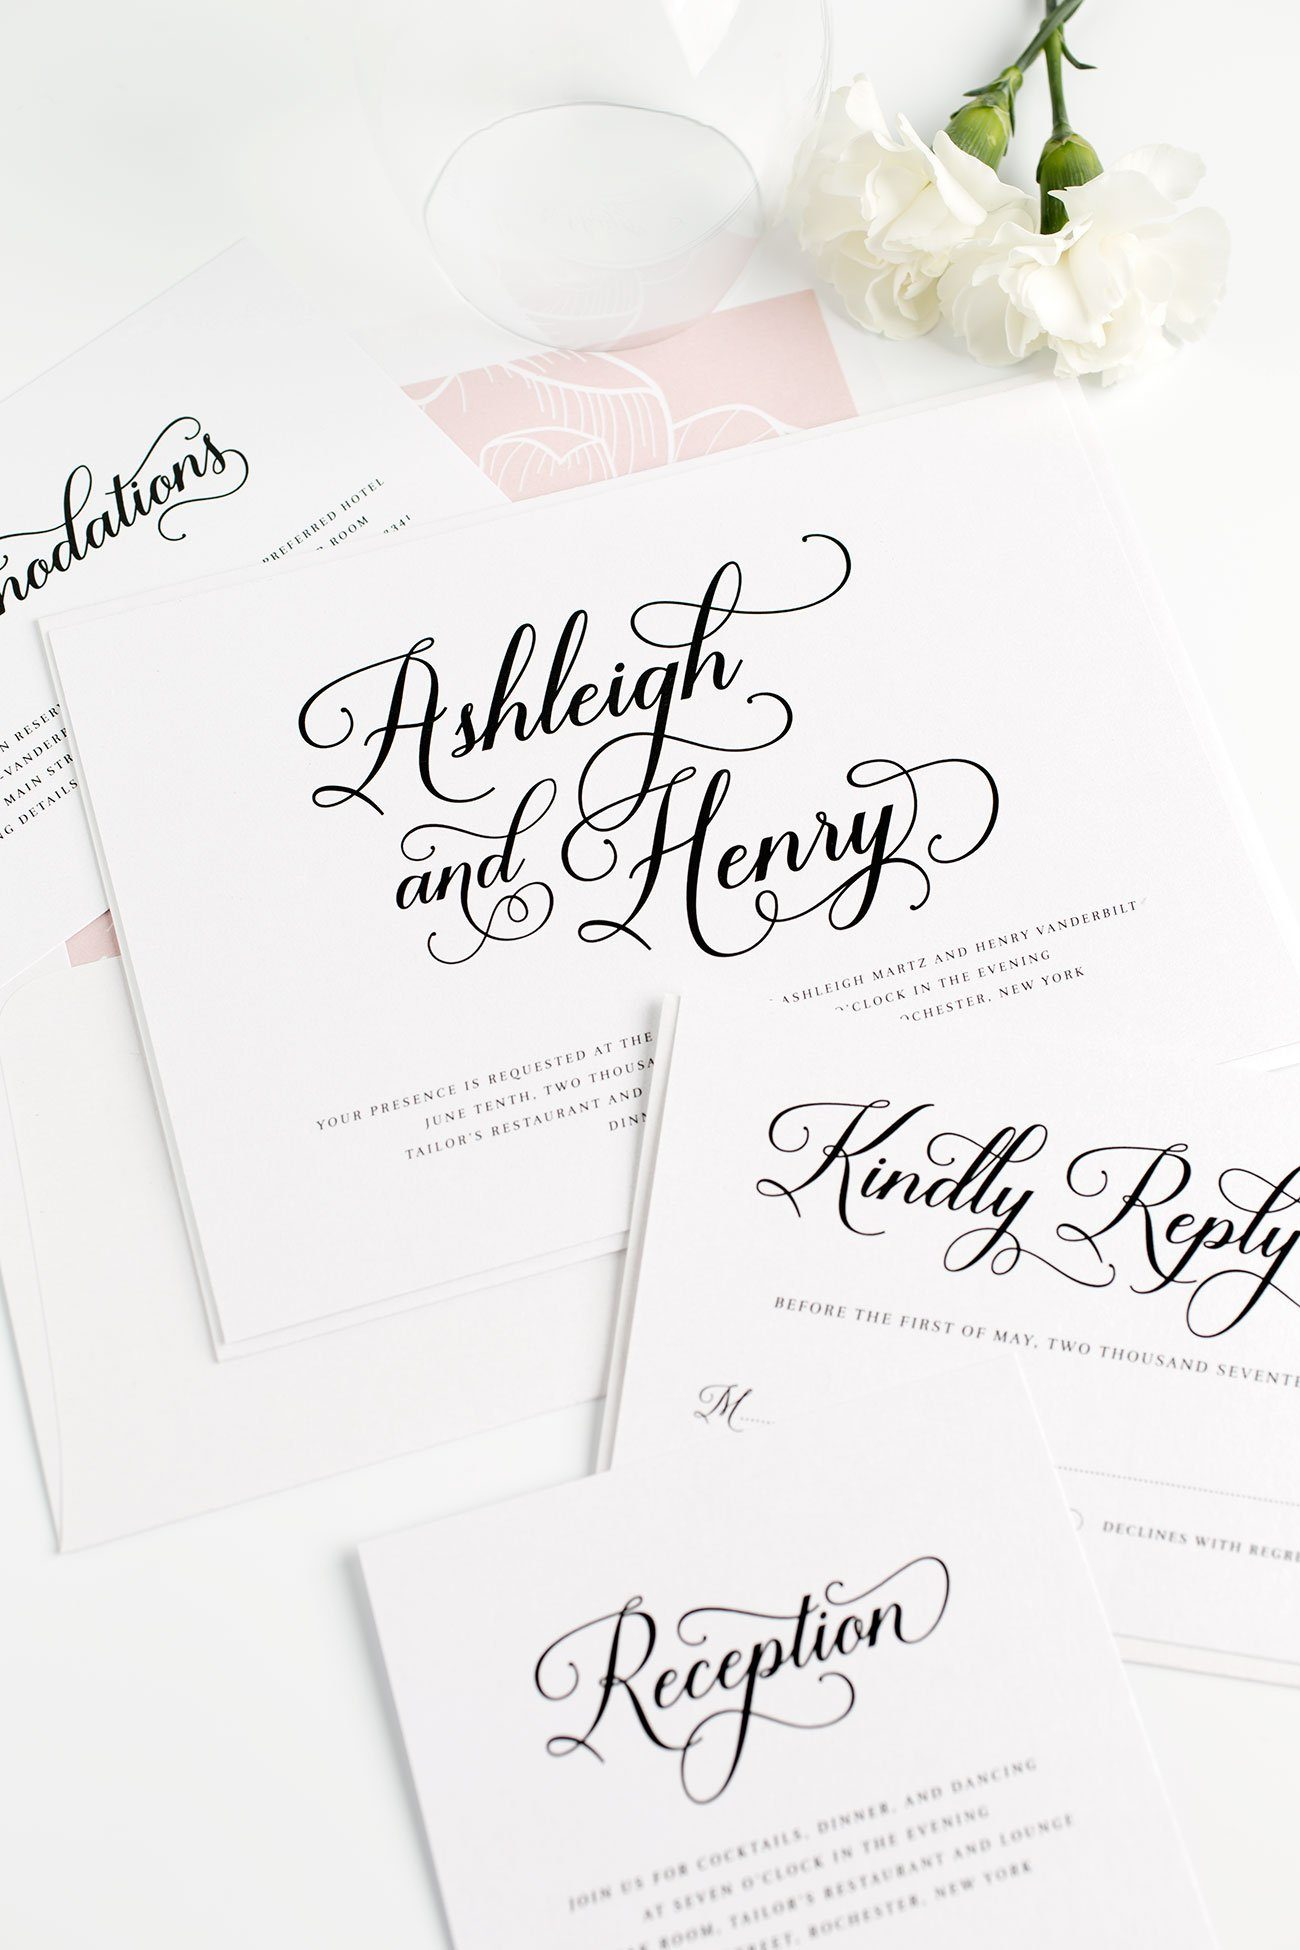 Calligraphy Wedding Invitations in Blush Pink